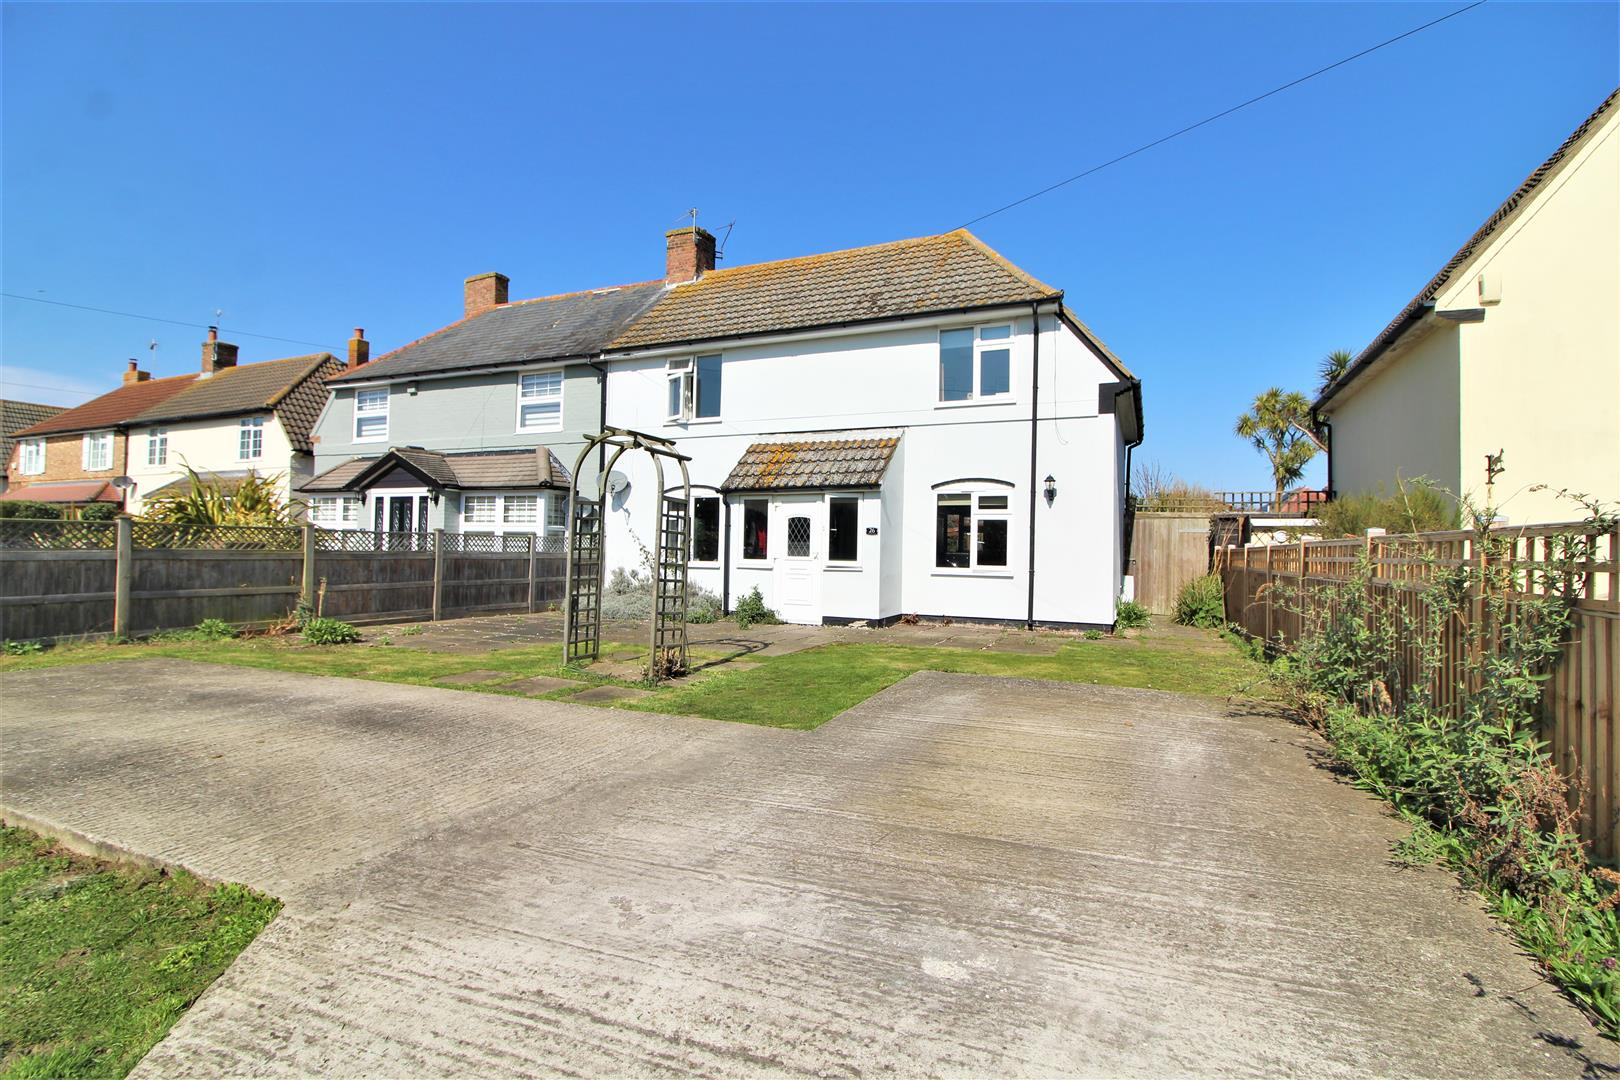 Pole Barn Lane, Frinton-On-Sea, Essex, CO13 9NJ